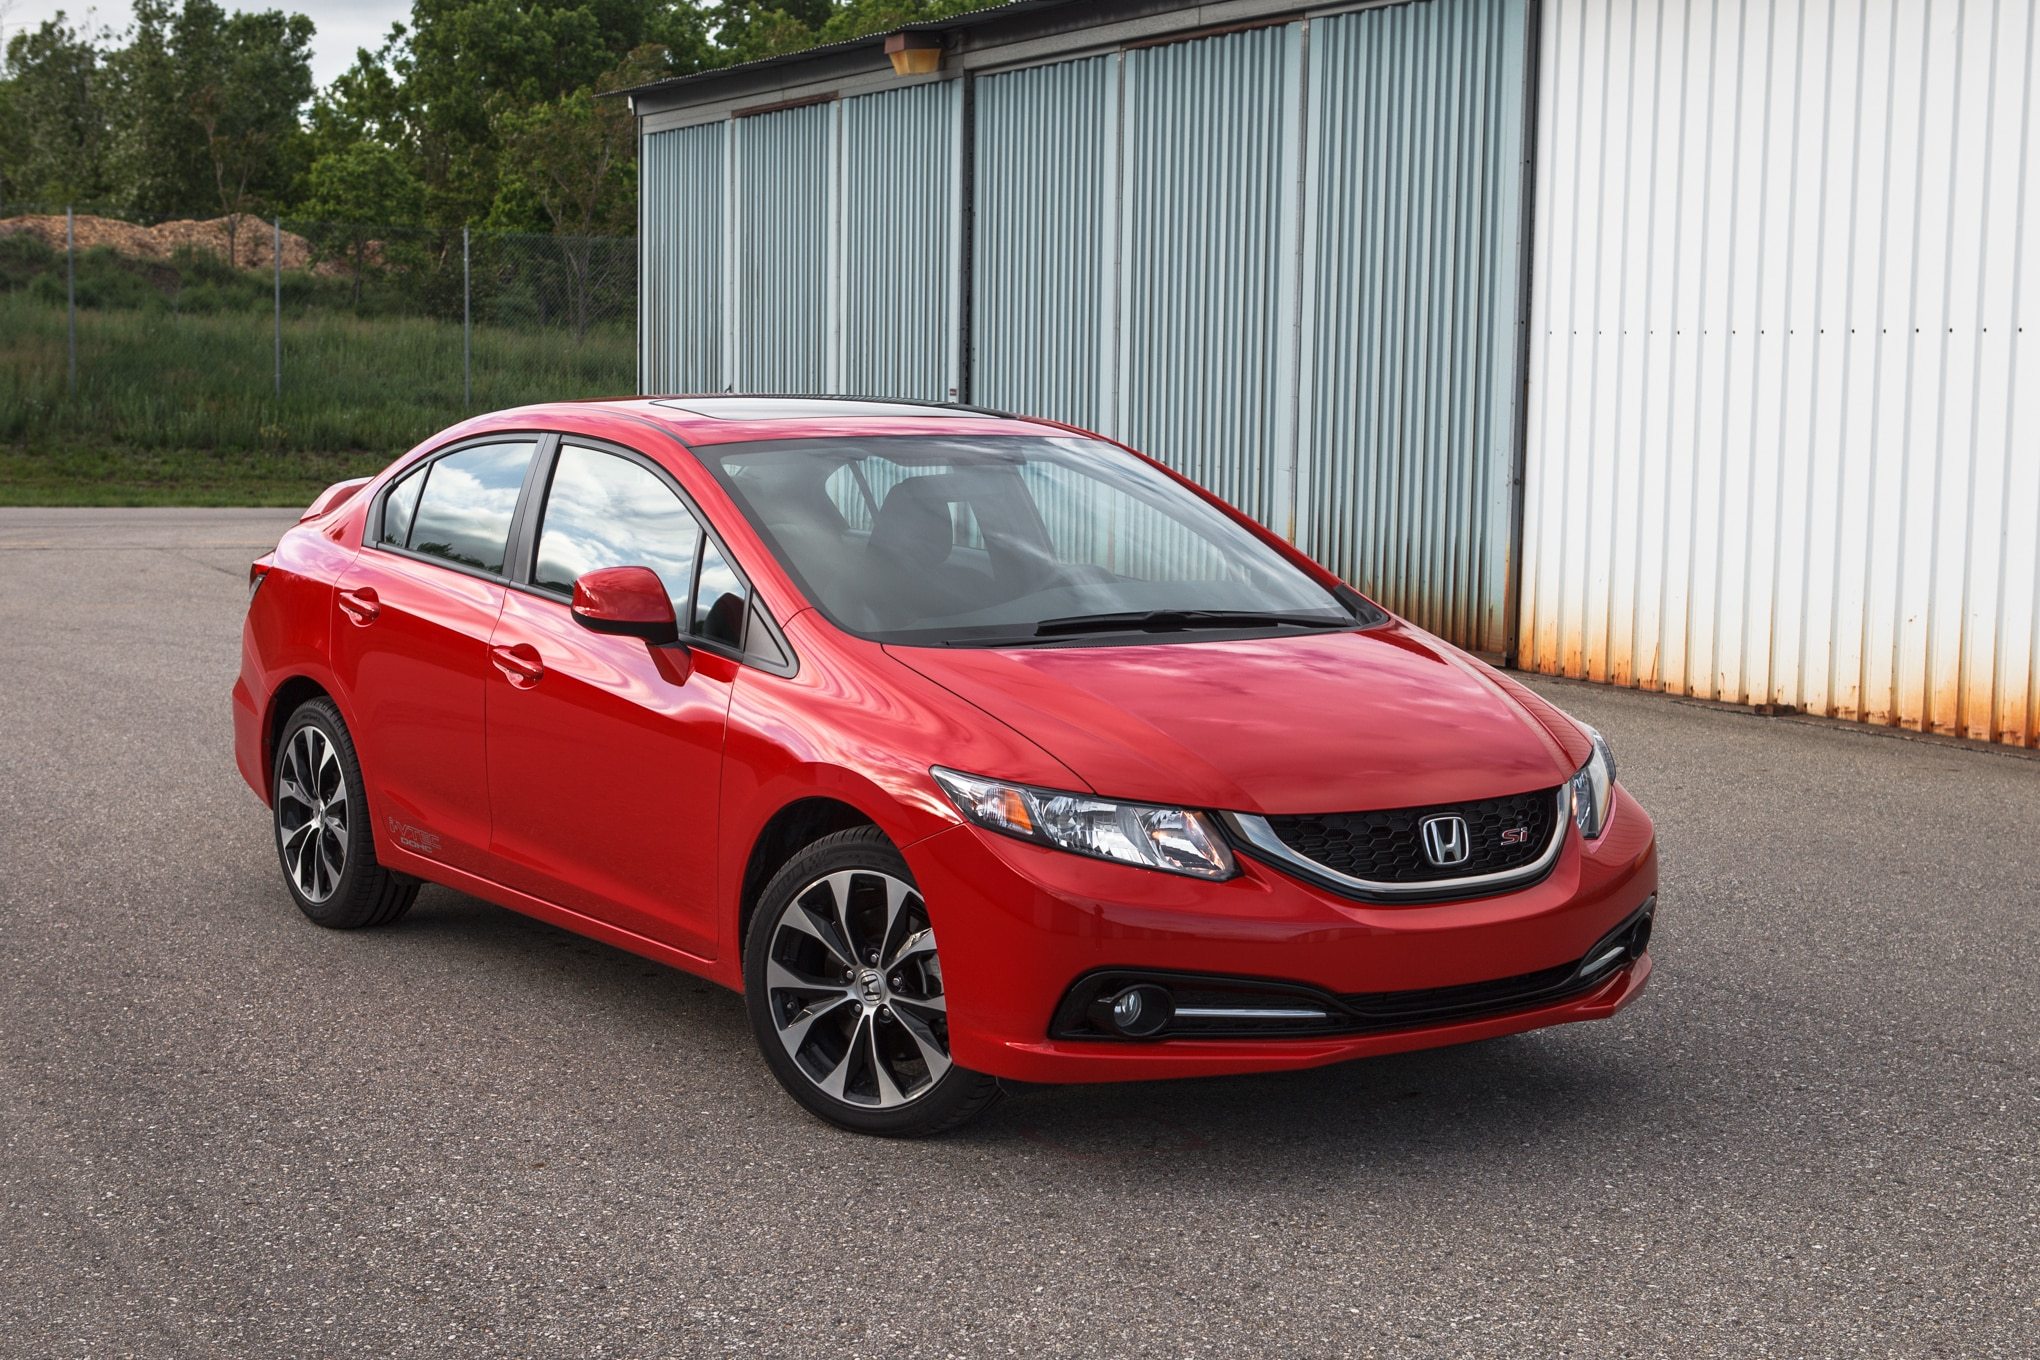 Honda Civic Leads August 2013 Compact Auto Sales